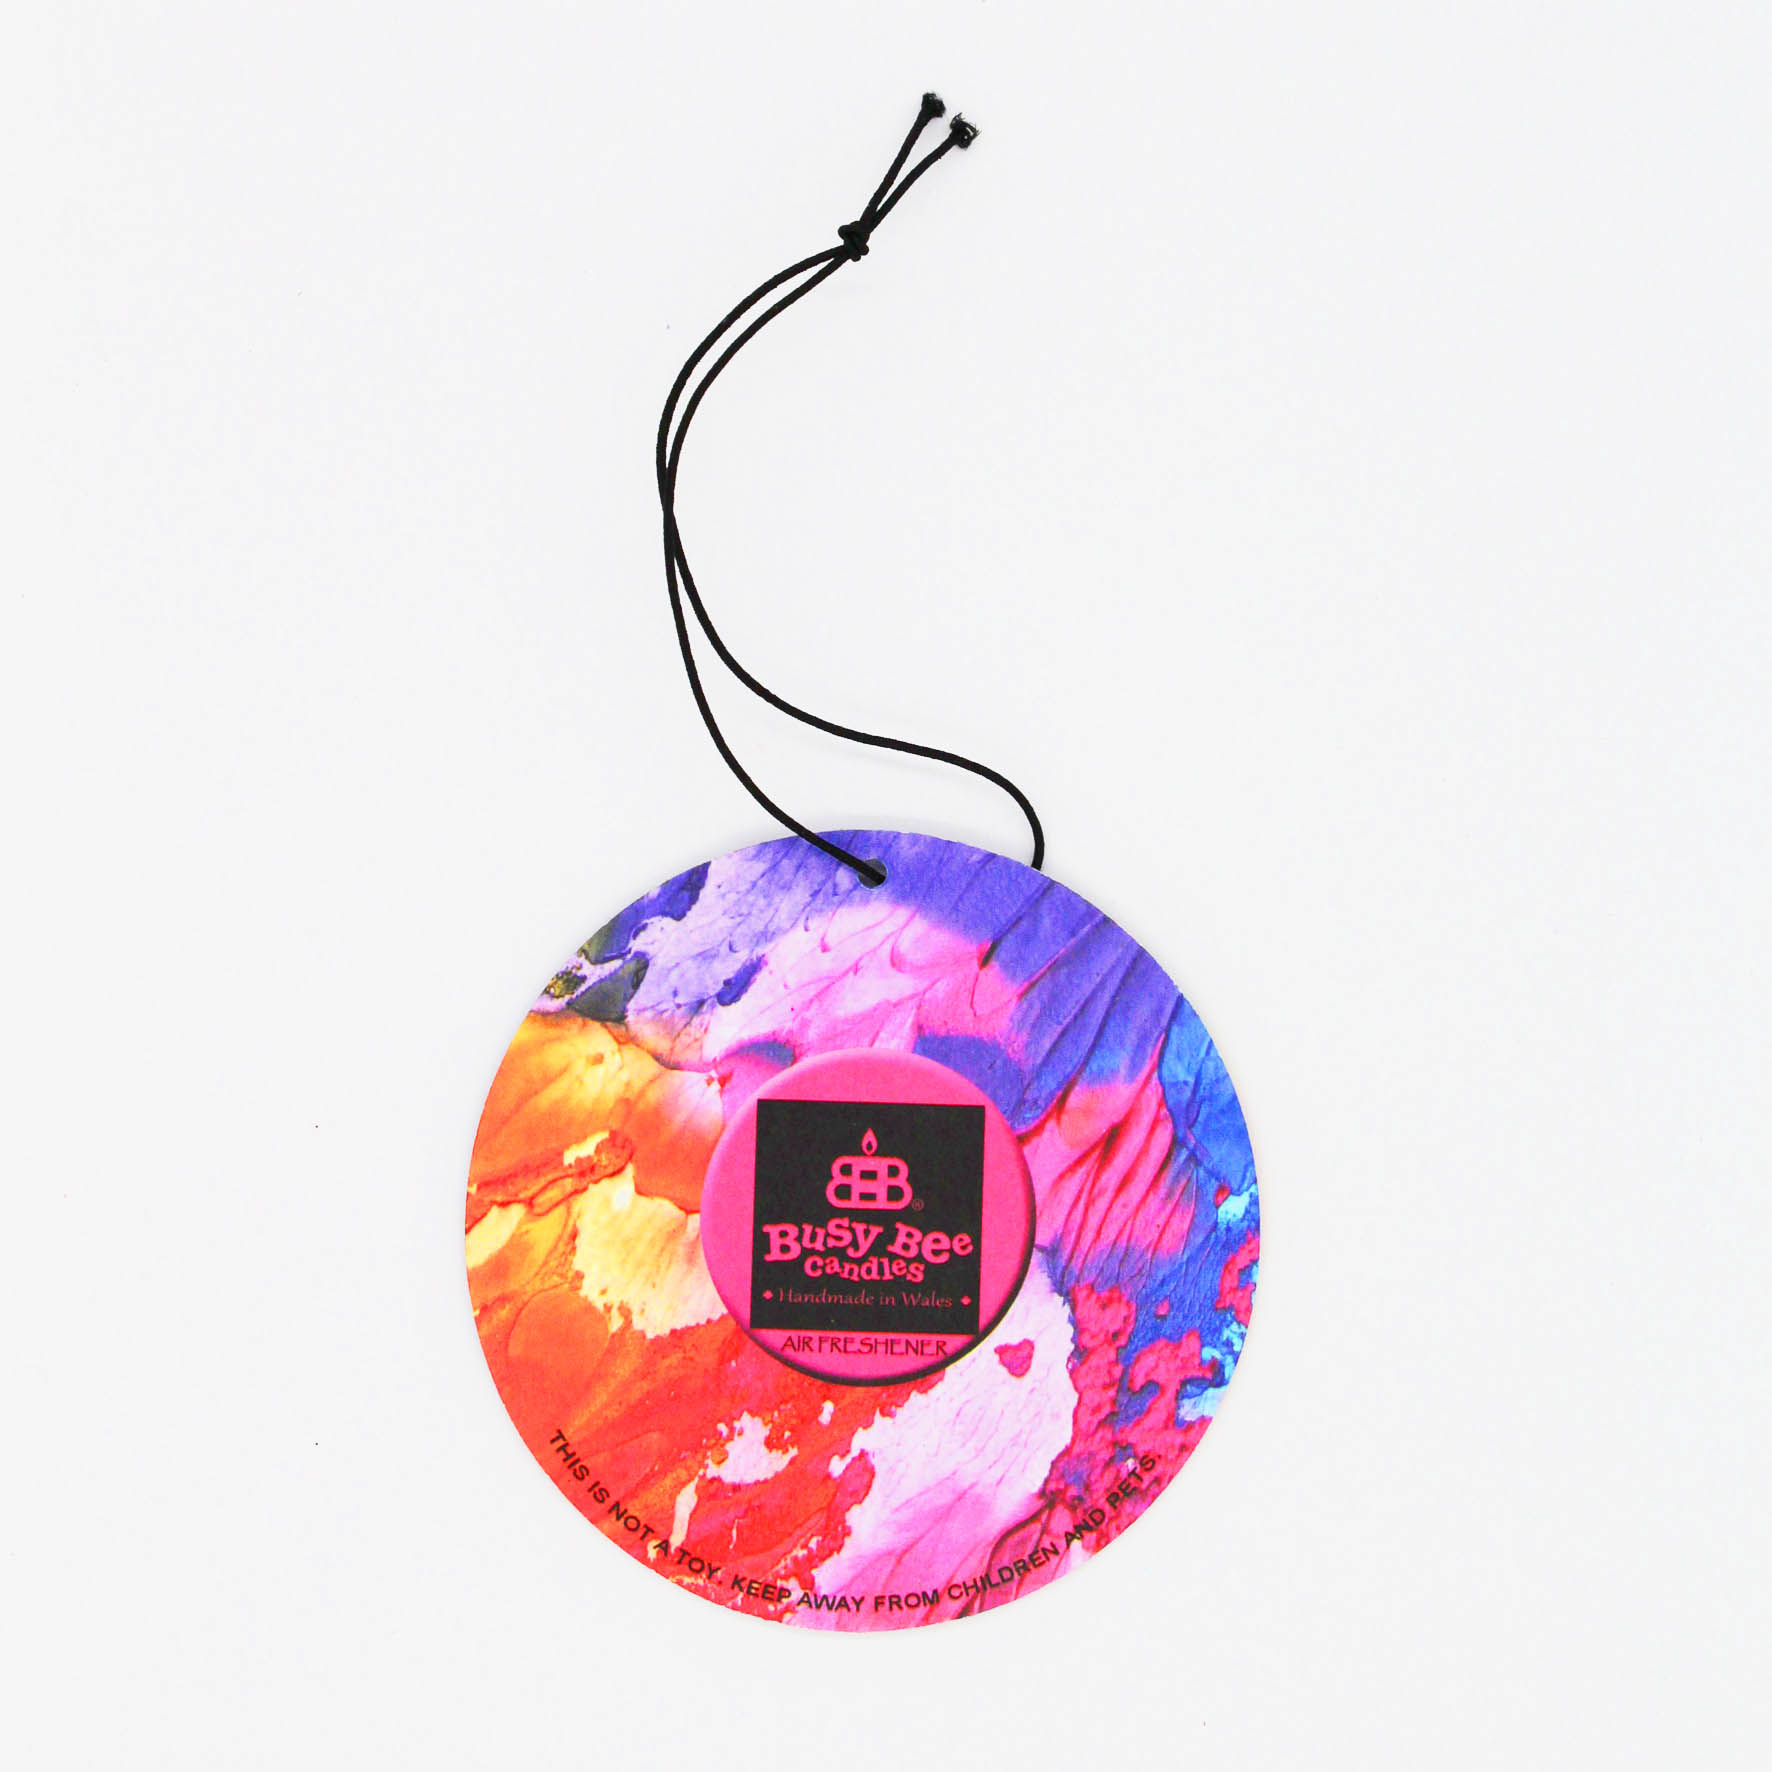 Beach Bum Hanging Air Freshener